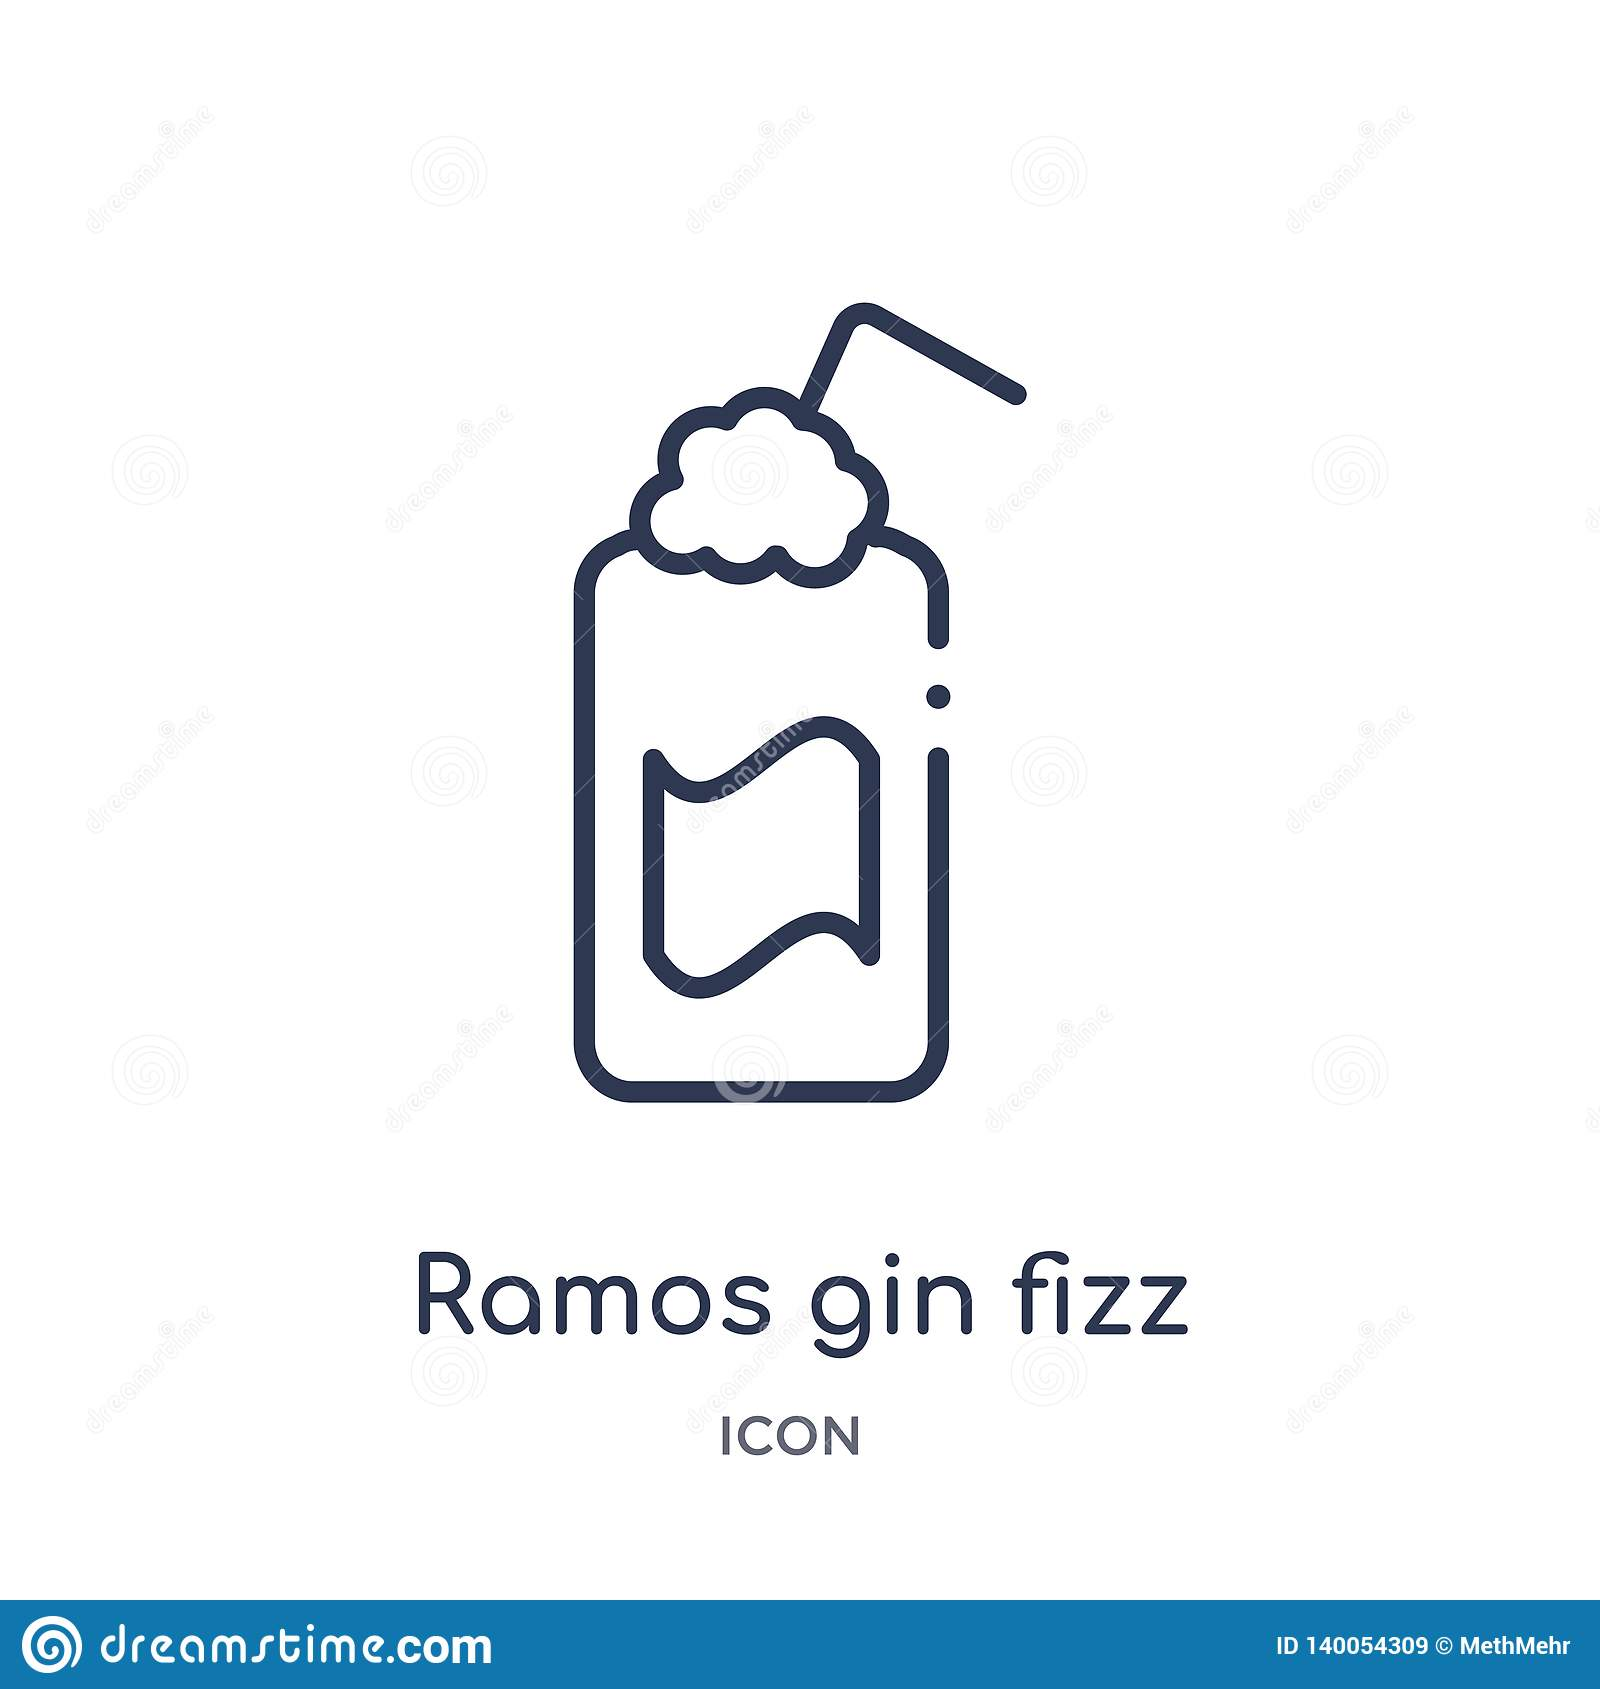 Linear ramos gin fizz icon from Drinks outline collection. Thin line ramos gin fizz vector isolated on white background. ramos gin